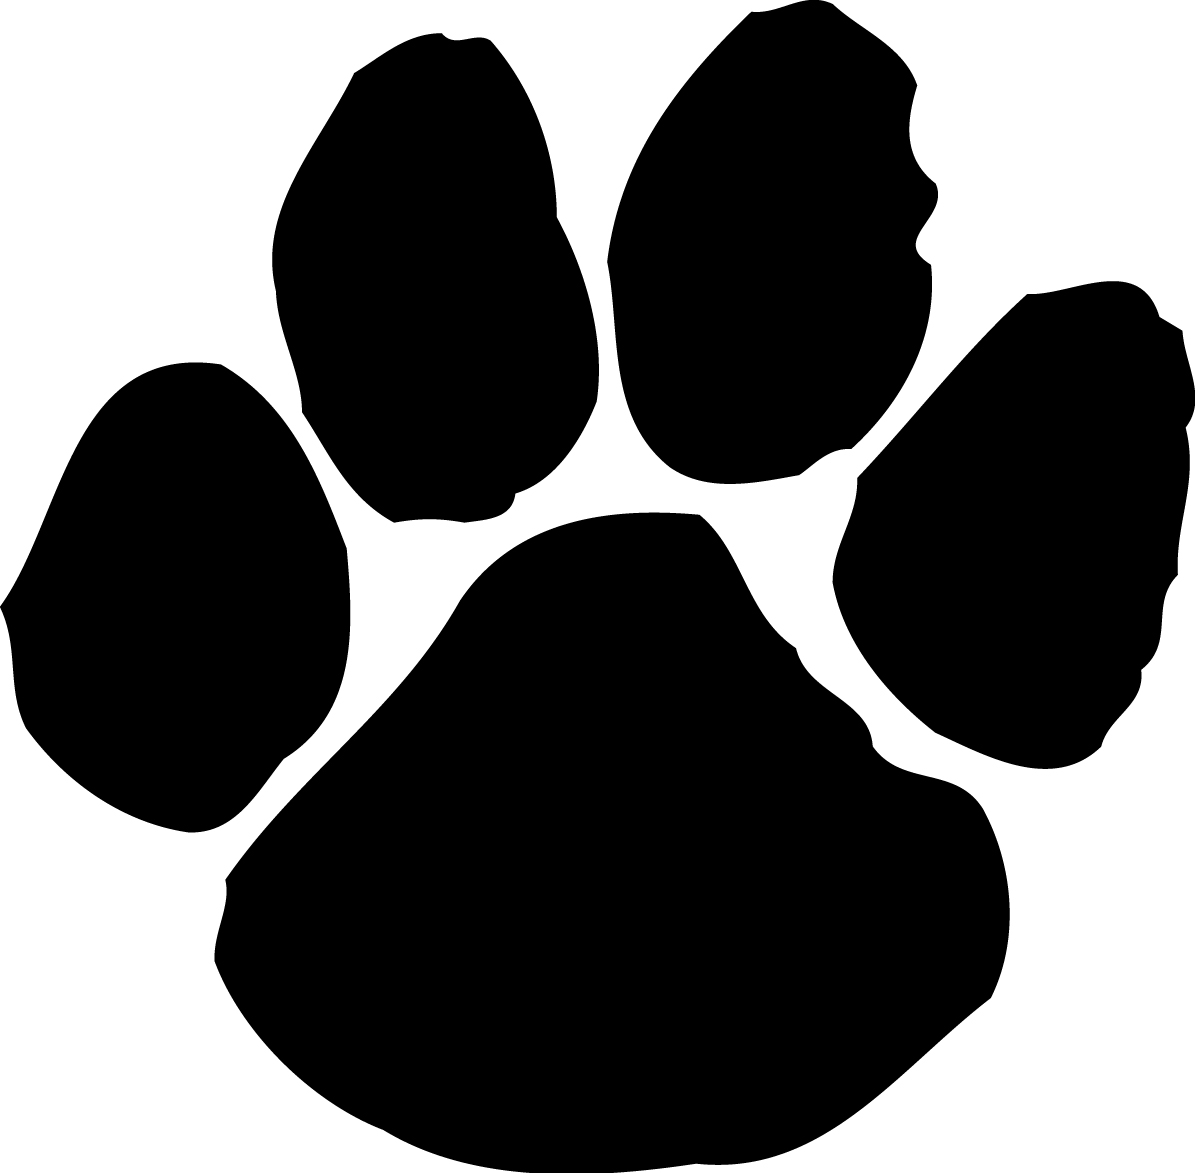 Clip Art Dog Paw Print - Clipart library